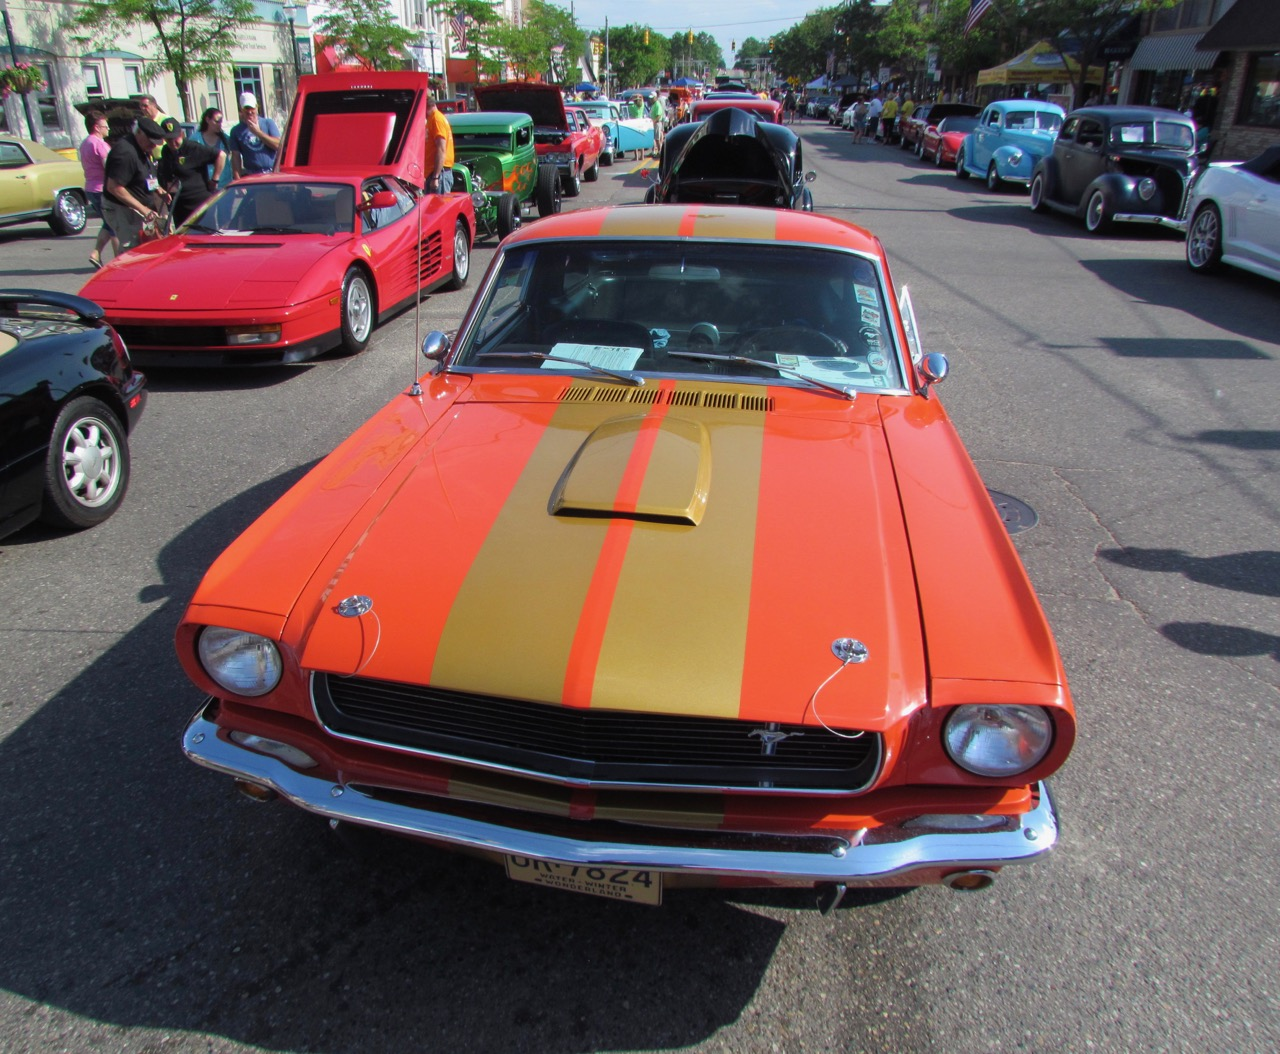 1965 Ford Mustang in downtown Clare, Michigan